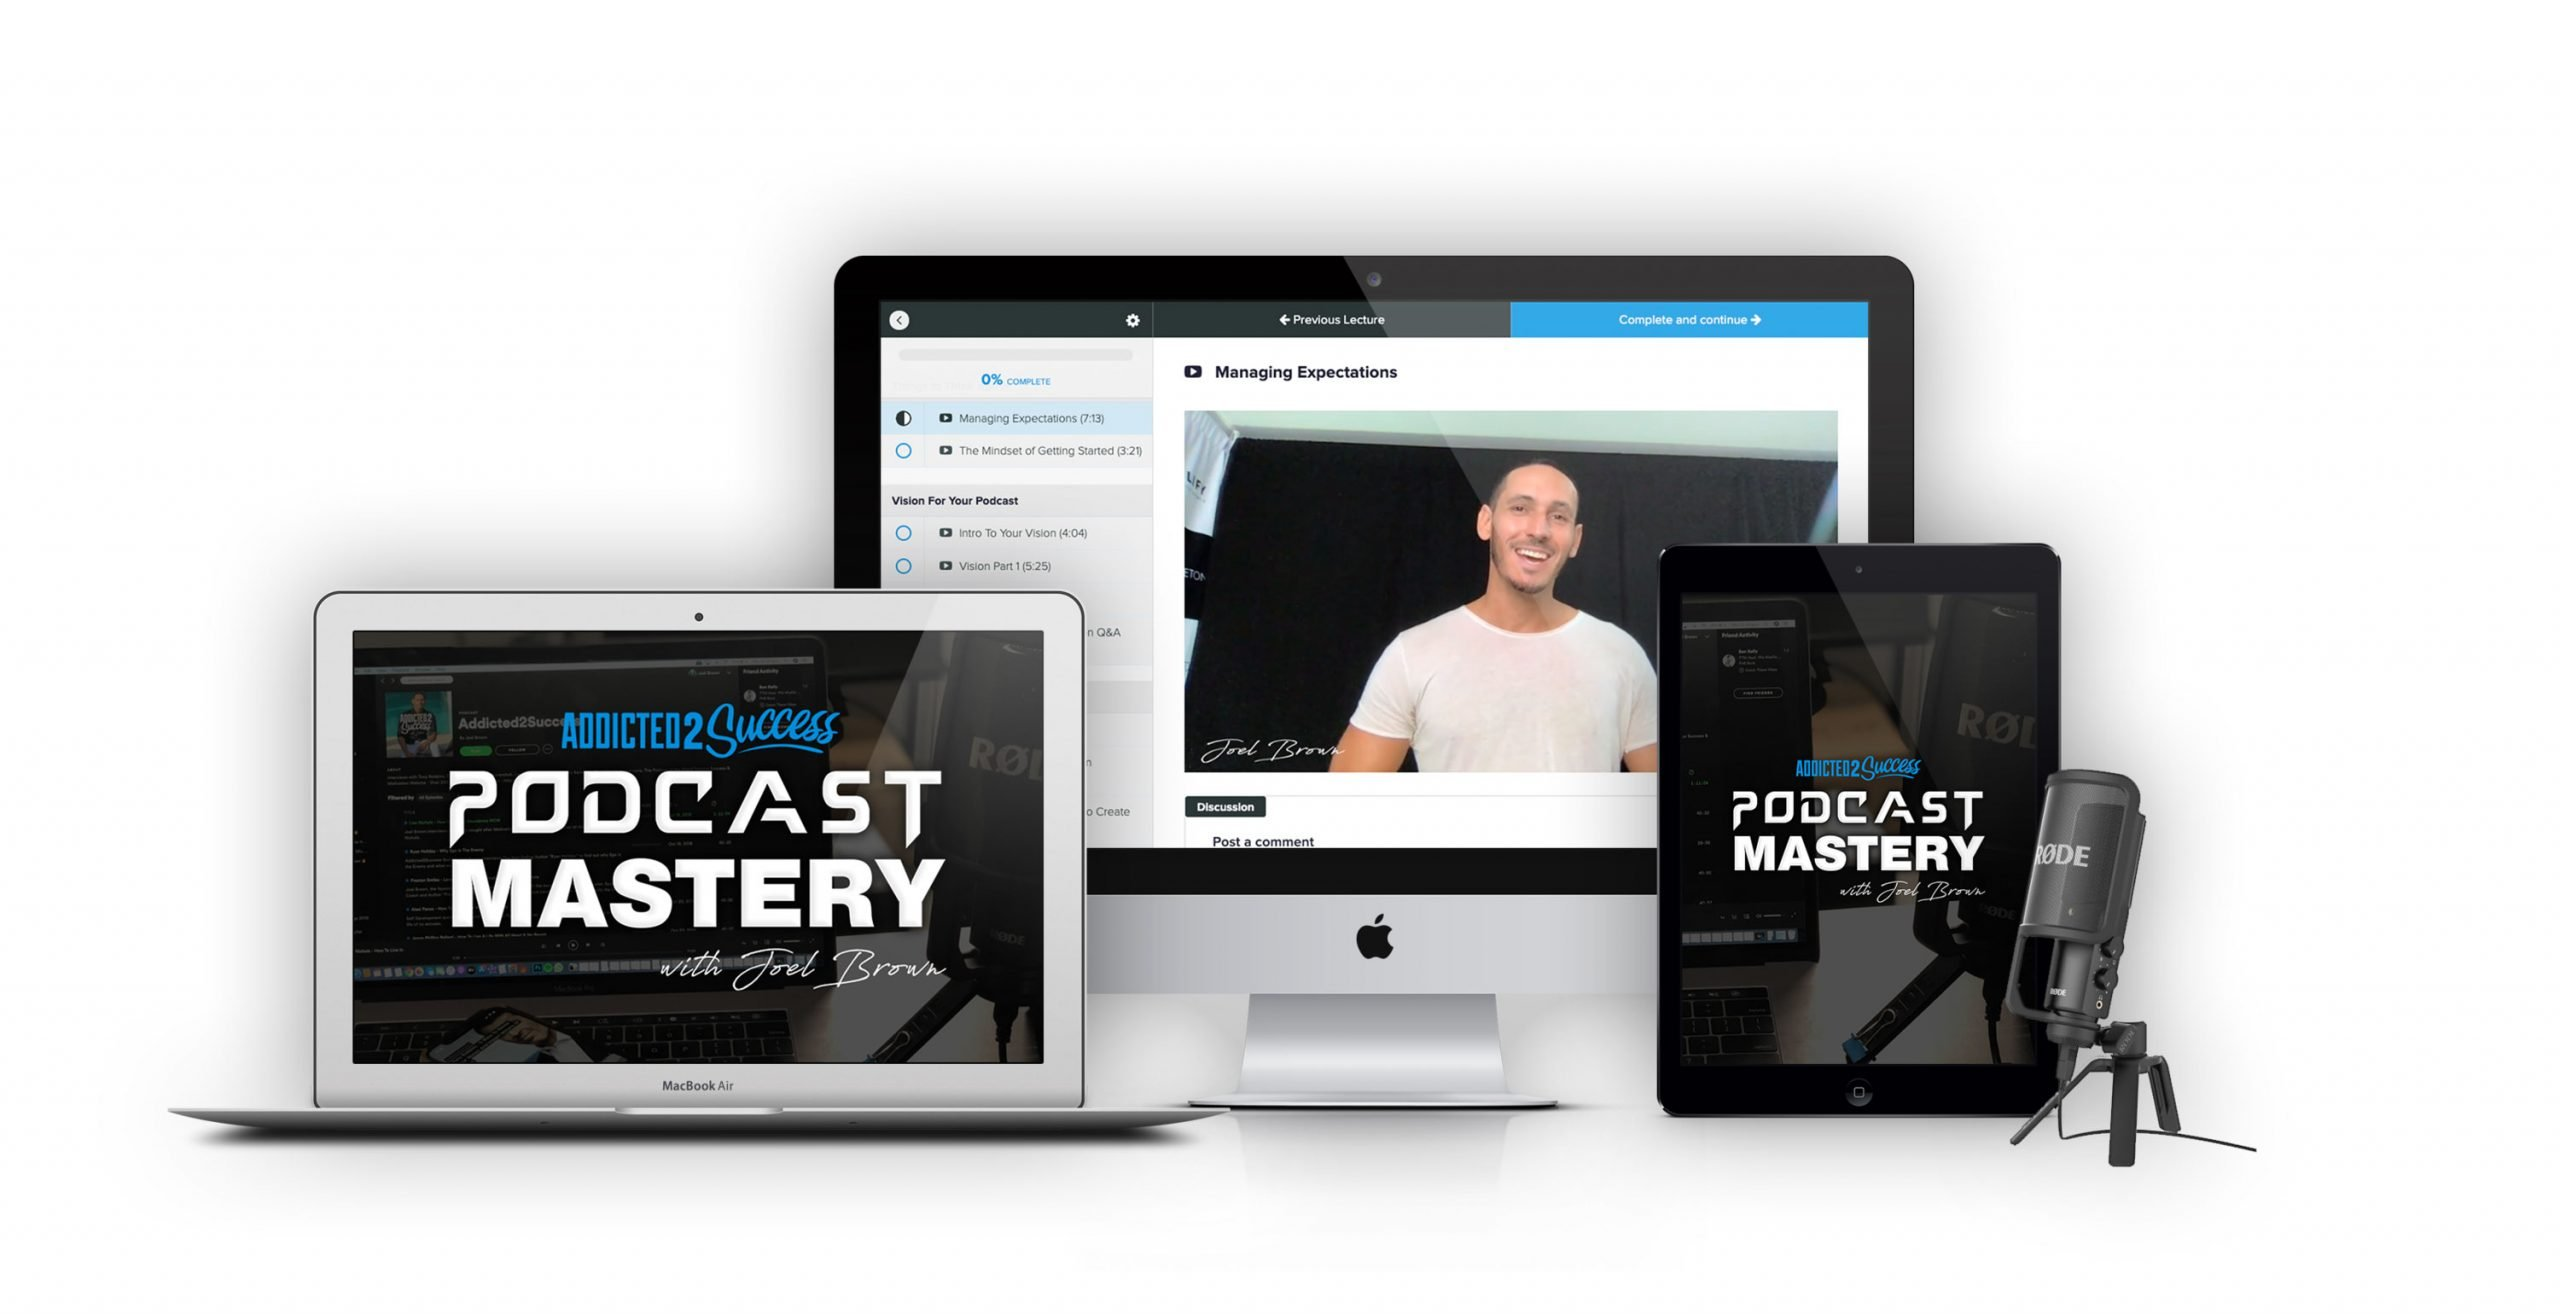 Joel Brown Podcast Mastery